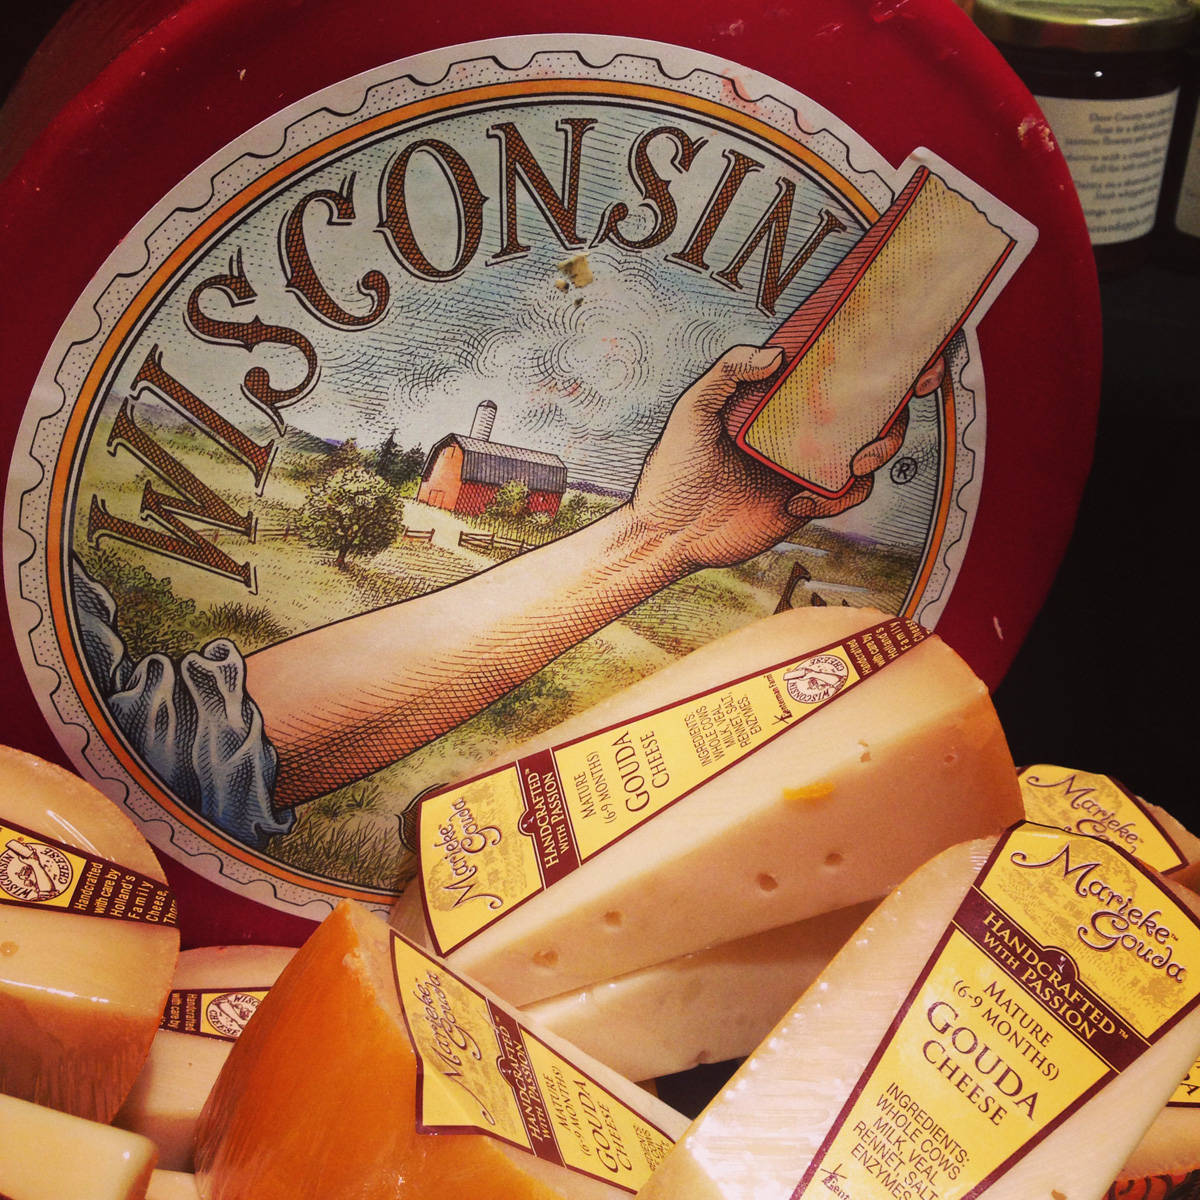 Wisconsin Cheese Originals Festival - afarmgirlsdabbles.com